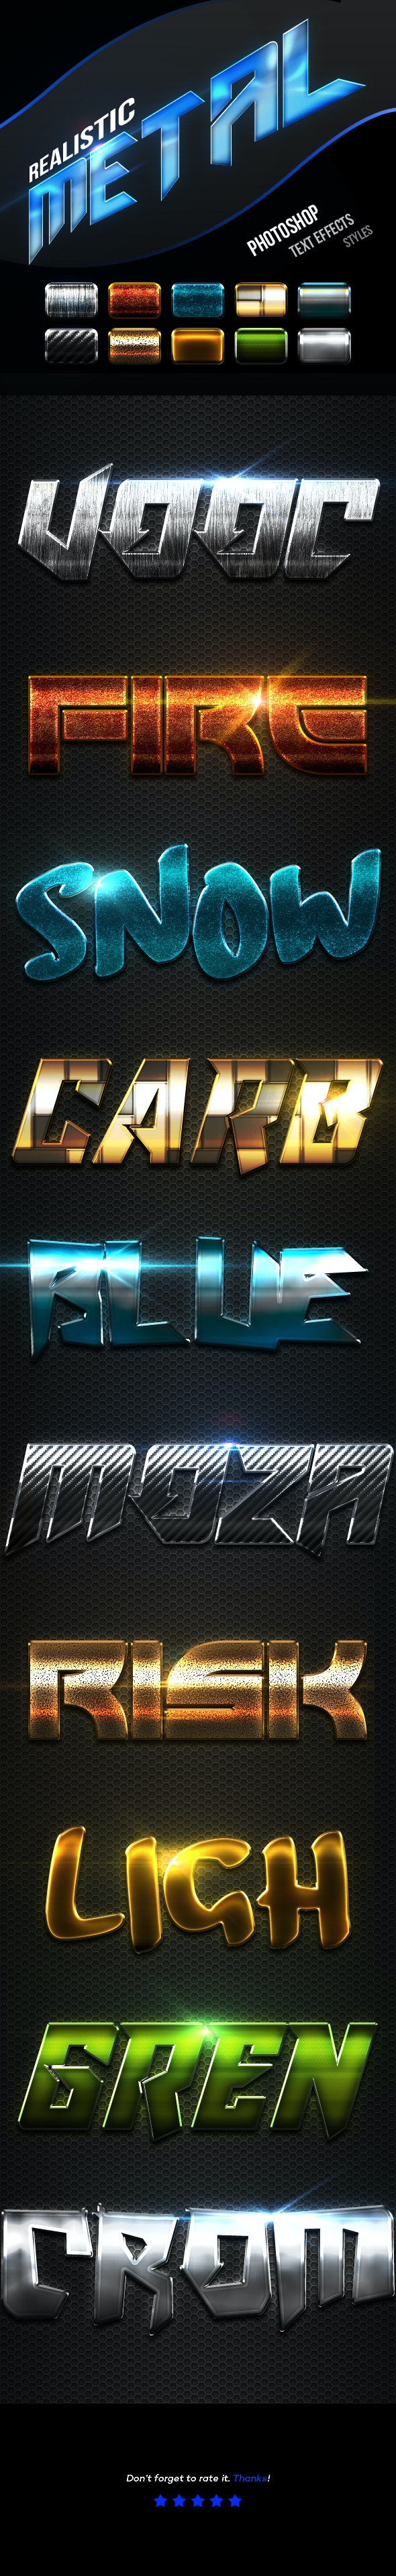 Realistic Metal Text Effects Vol.5 - Text Effects Actions